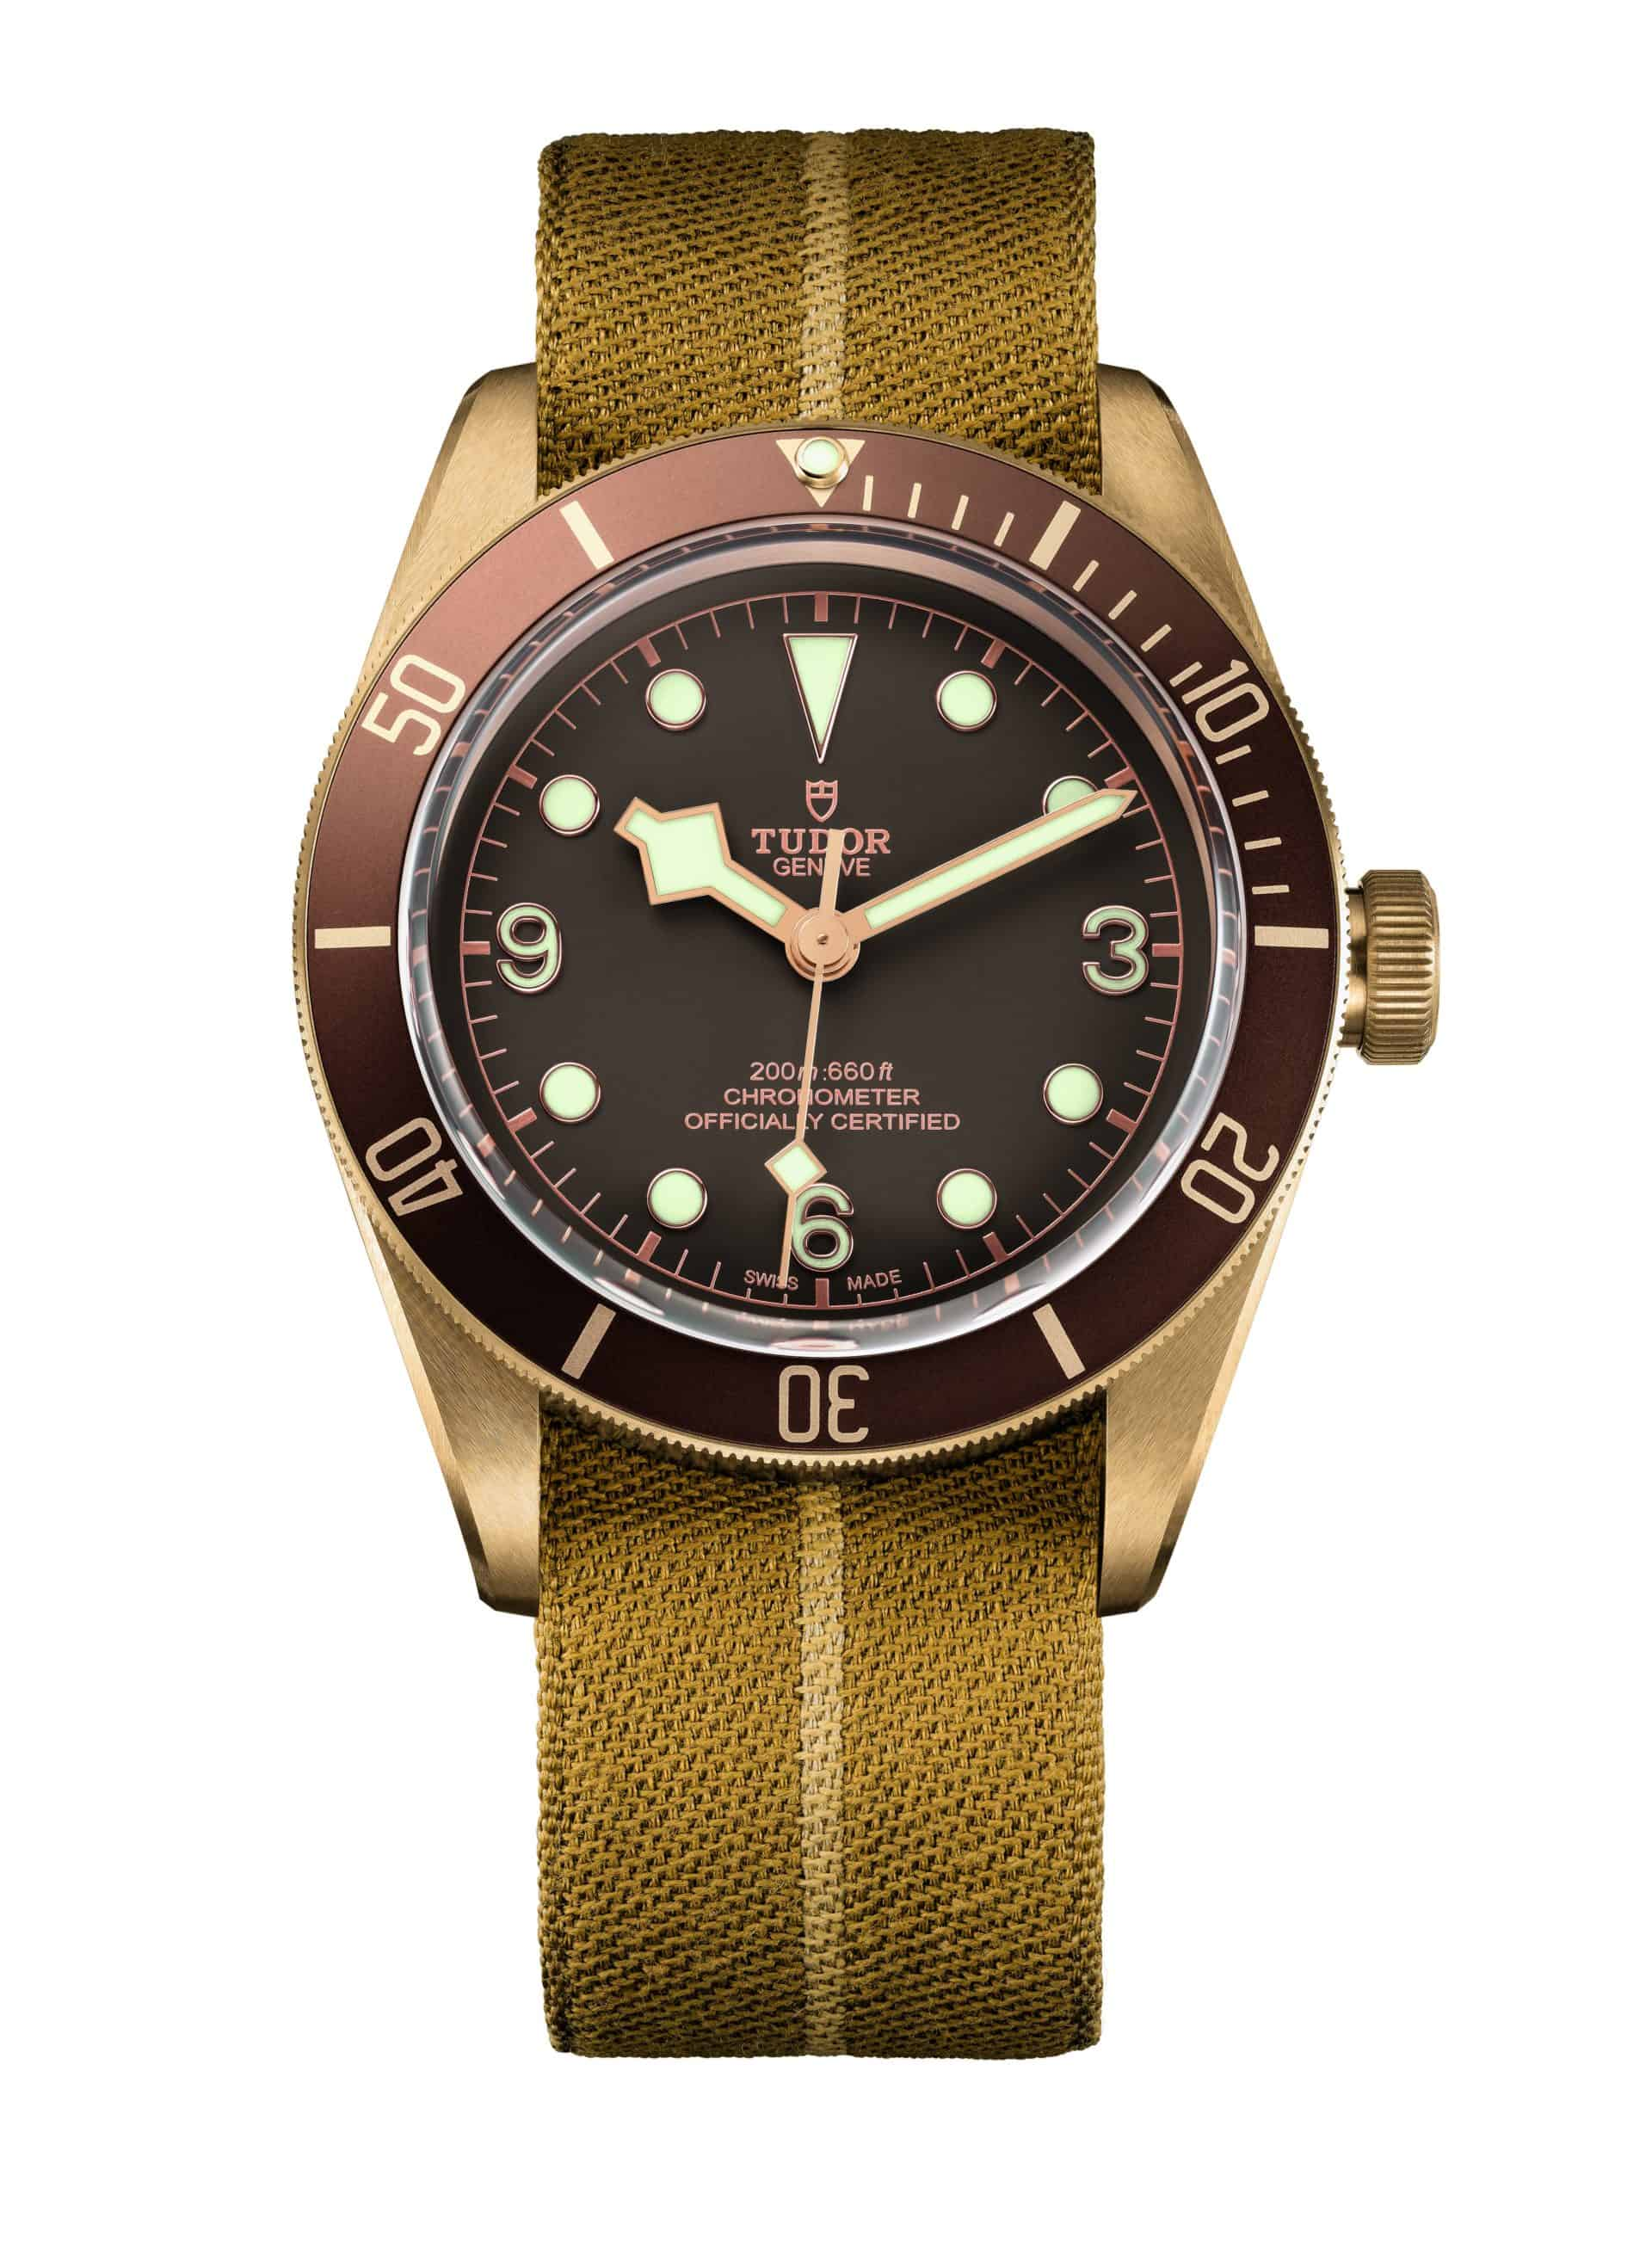 EMBARGO 16 März - TUDOR HERITAGE BLACK BAY BRONZE fabric strap